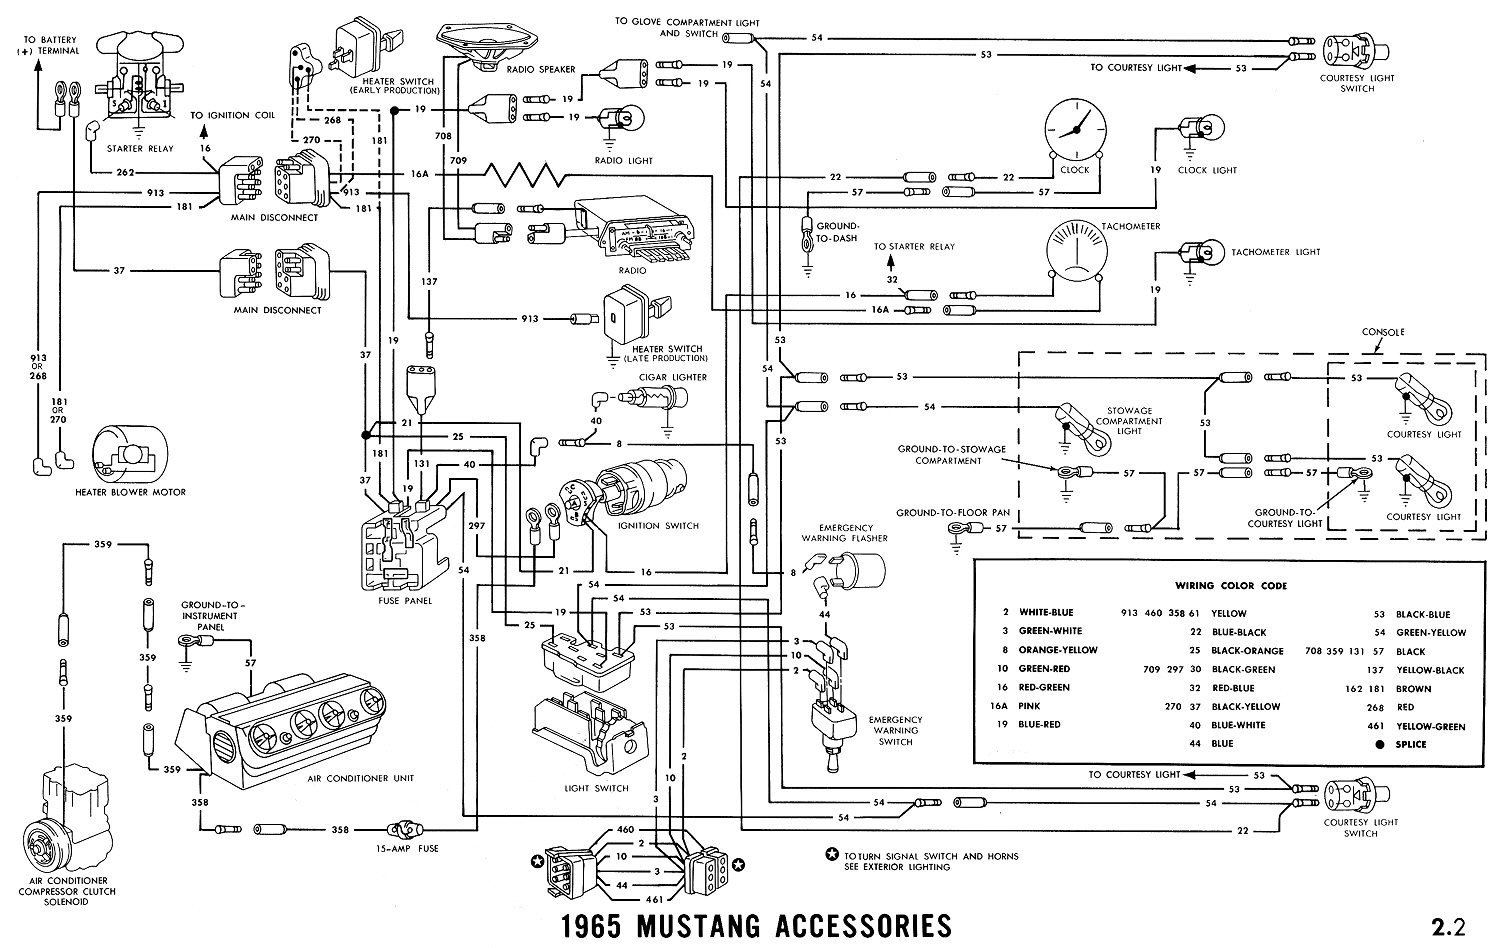 1965i 1965 mustang wiring diagrams average joe restoration 1965 ford mustang wiring diagrams at sewacar.co